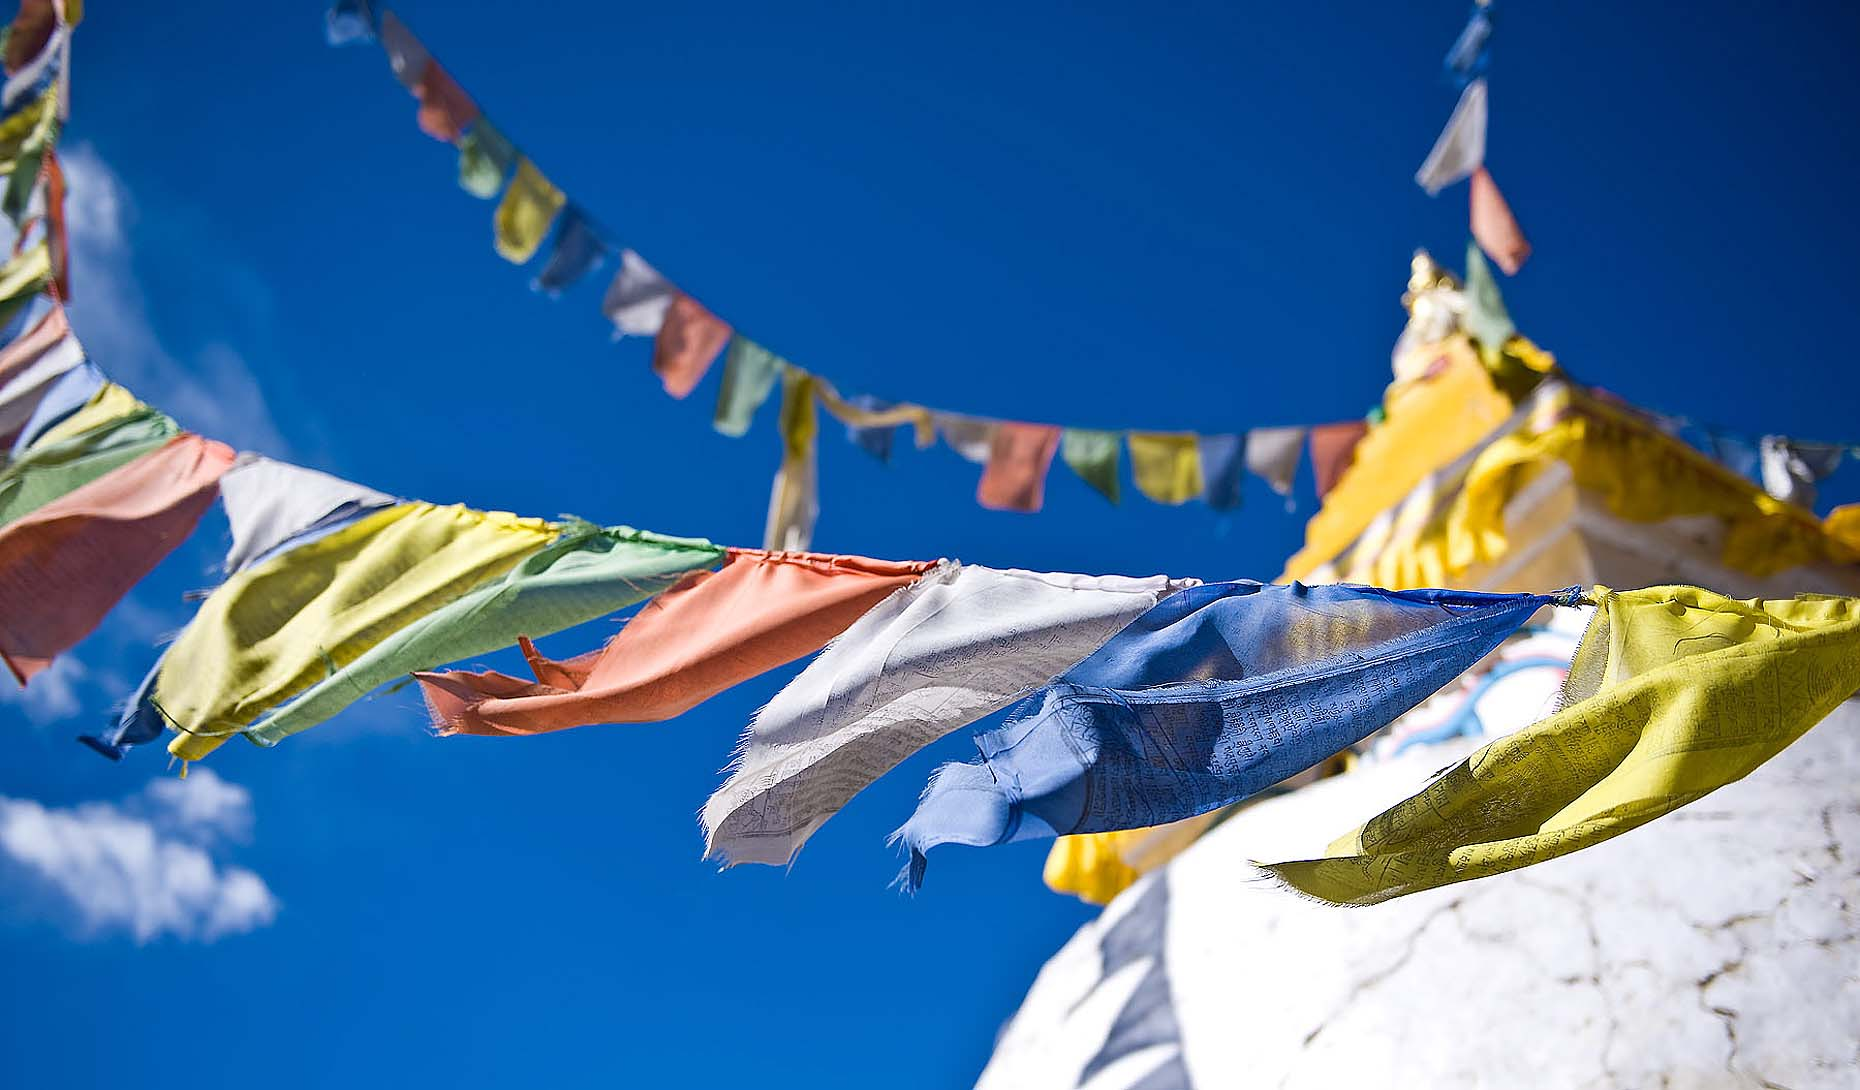 stupa-prayer-flags-colour-namche-bazaar-everest-solo-khumbu-nepal-21